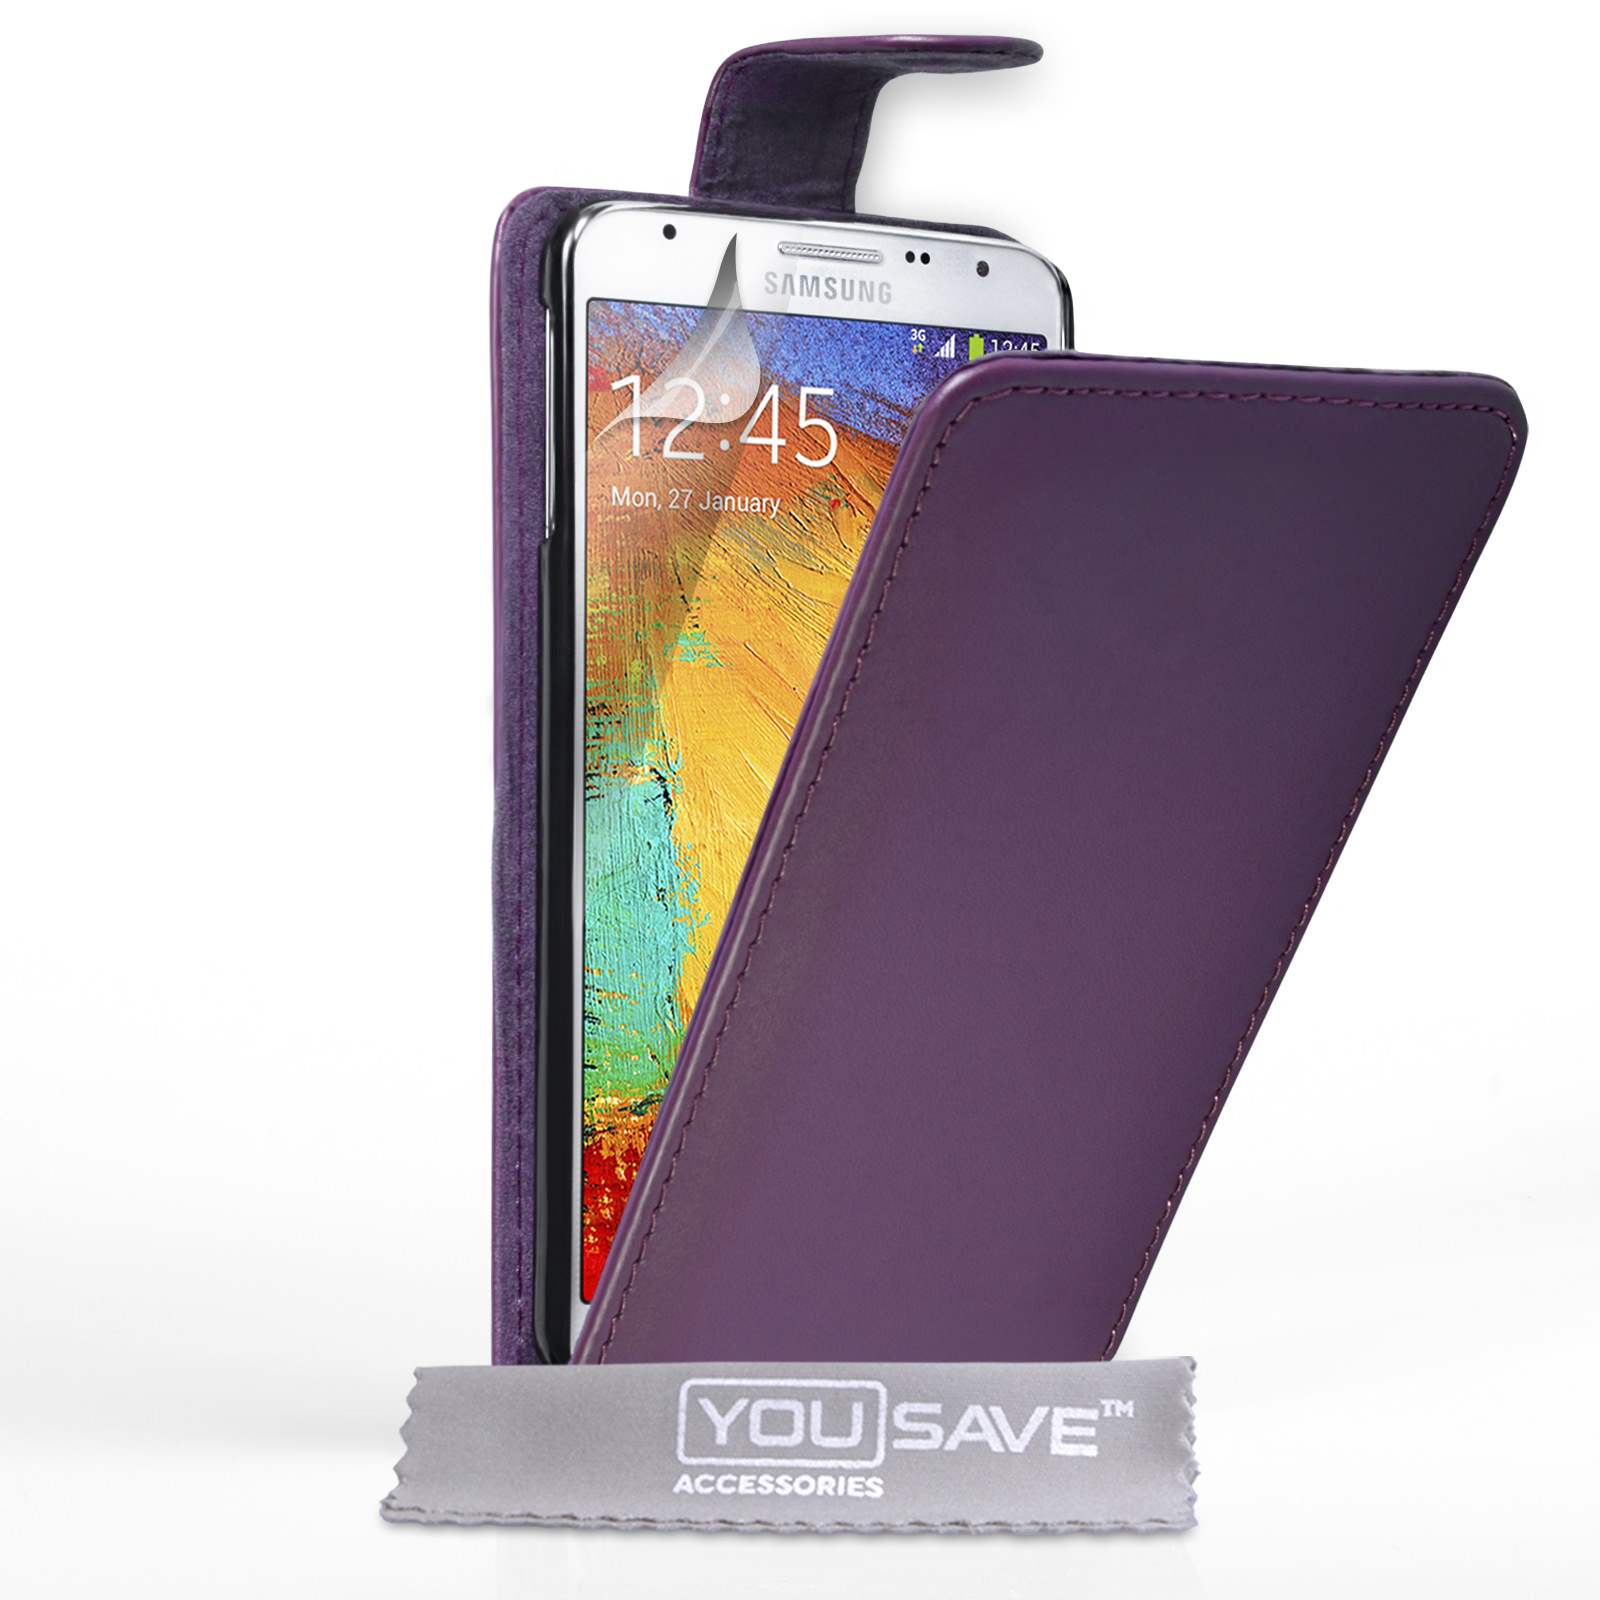 YouSave Samsung Galaxy Note 3 Neo Leather-Effect Flip Case - Purple